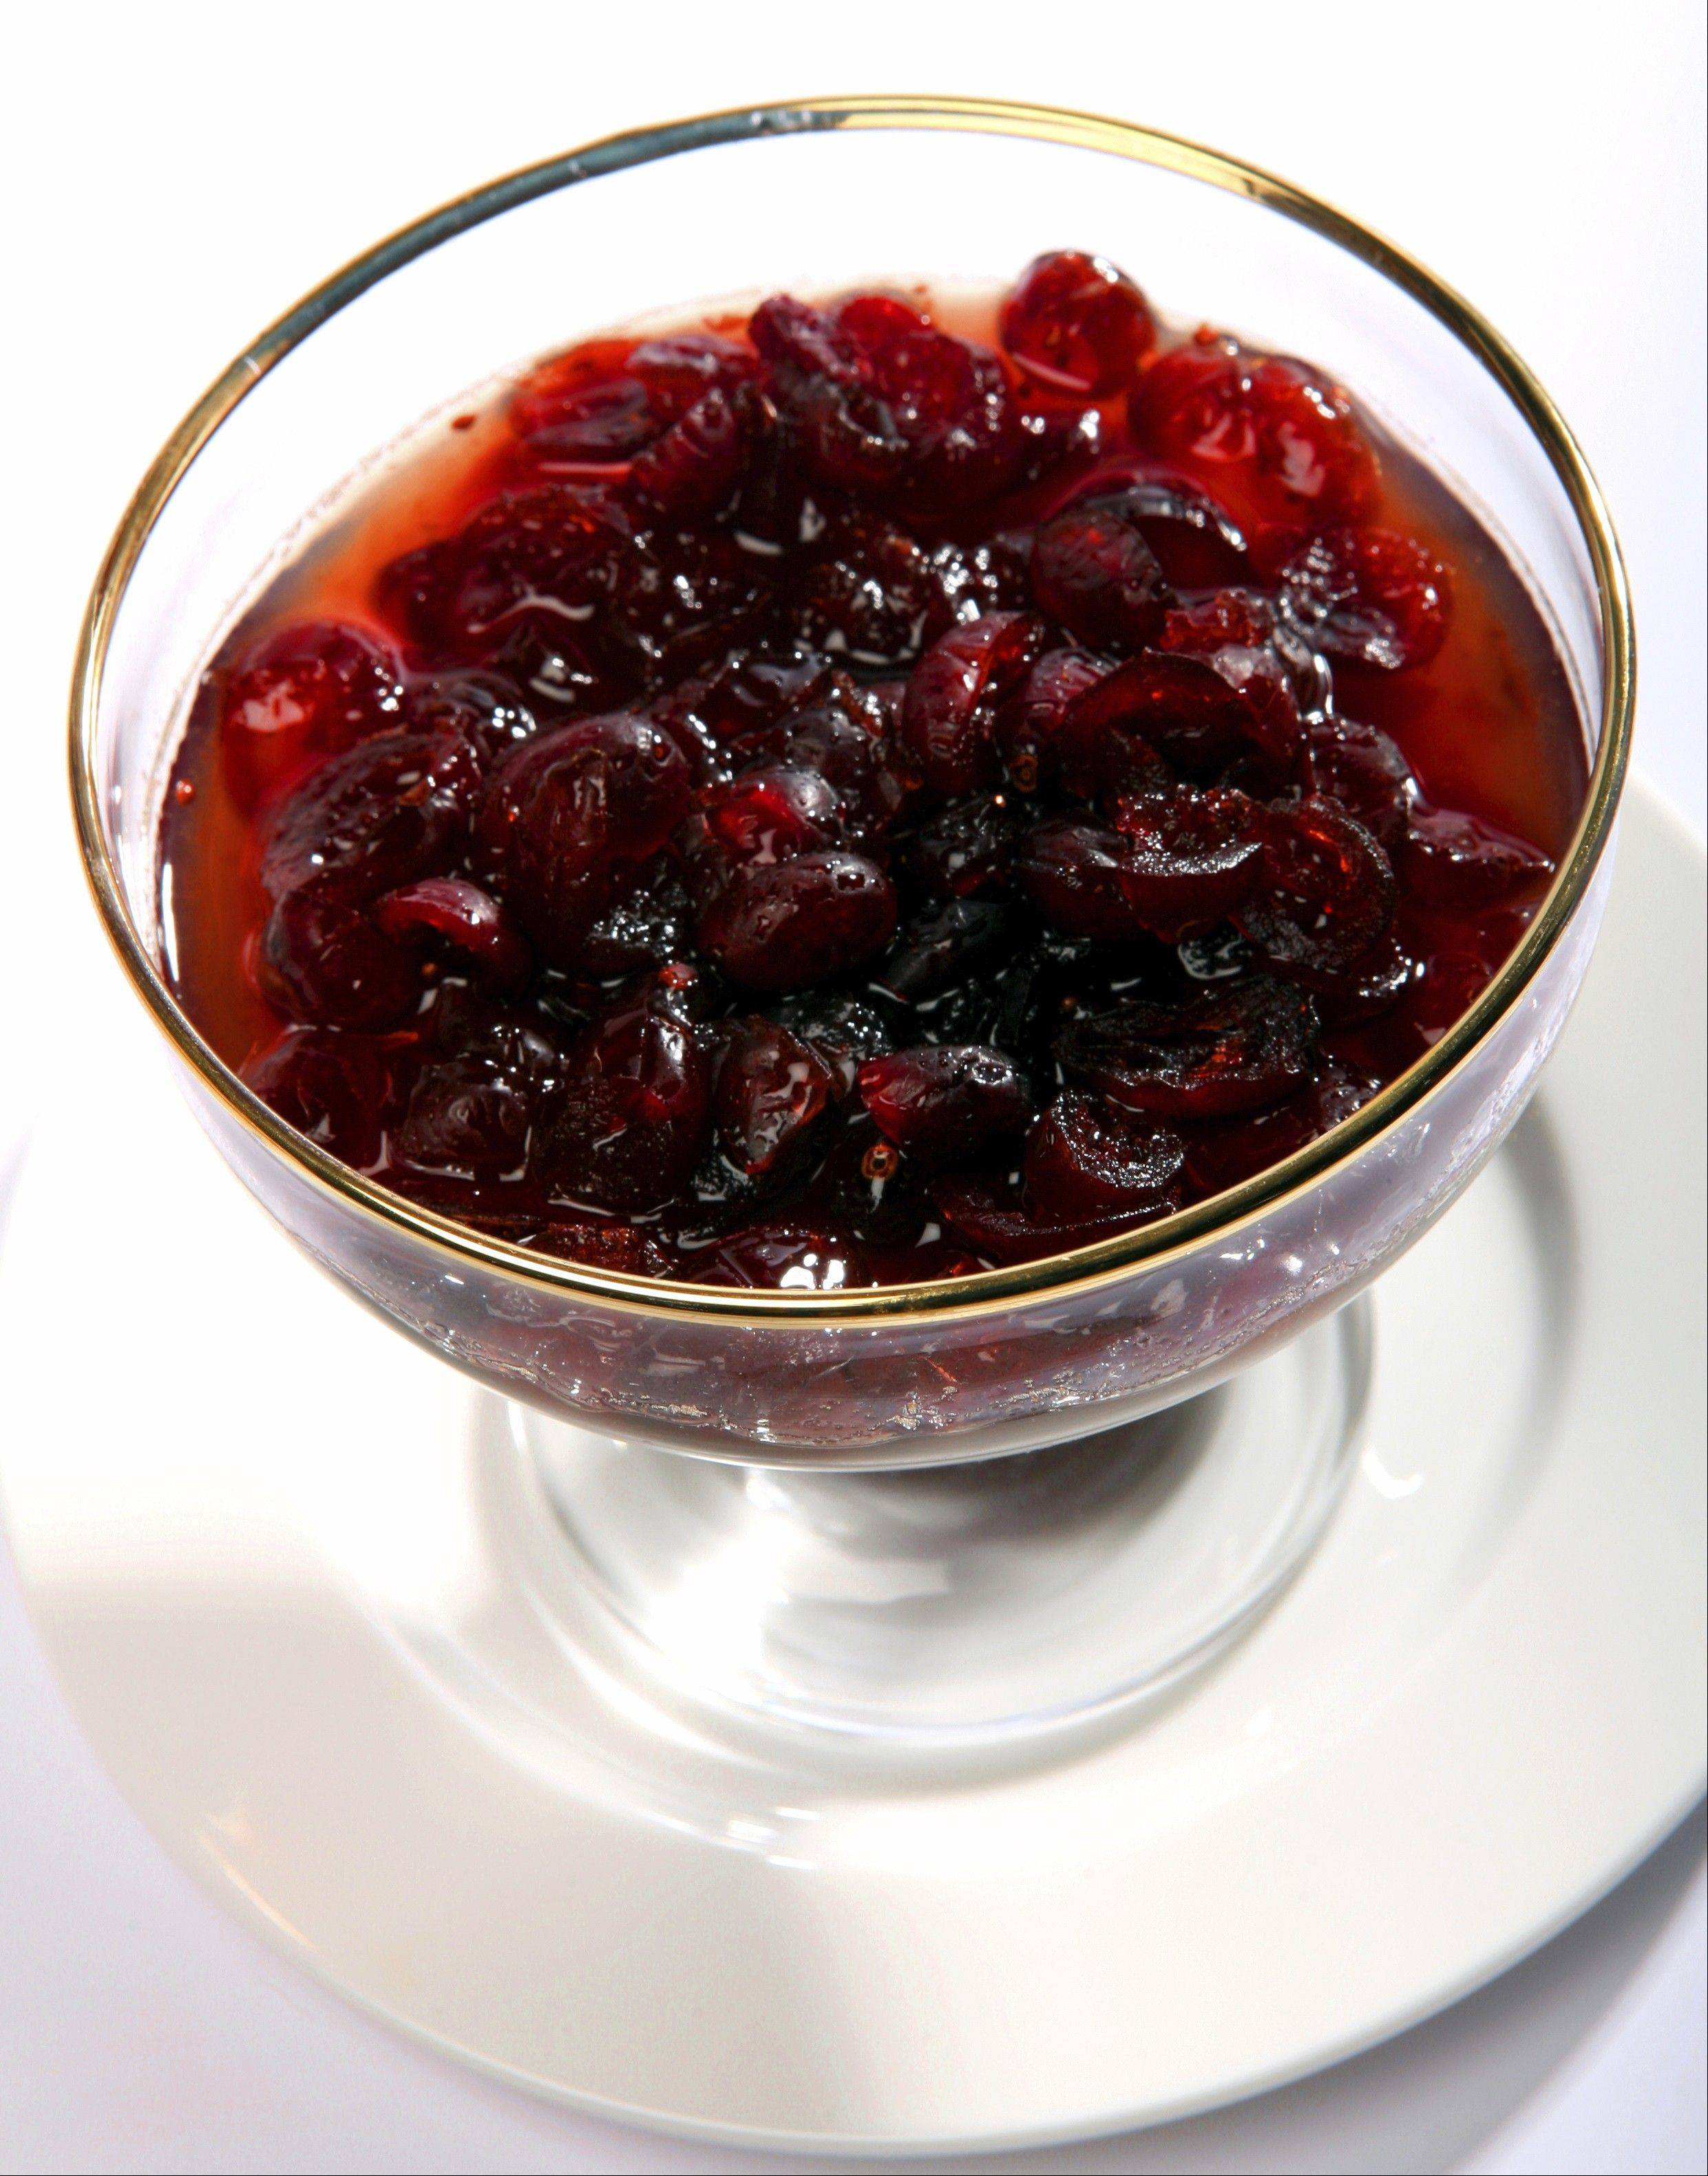 A glass bowl containing cranberry sauce, traditionally served with turkey at thanksgiving and Christmas